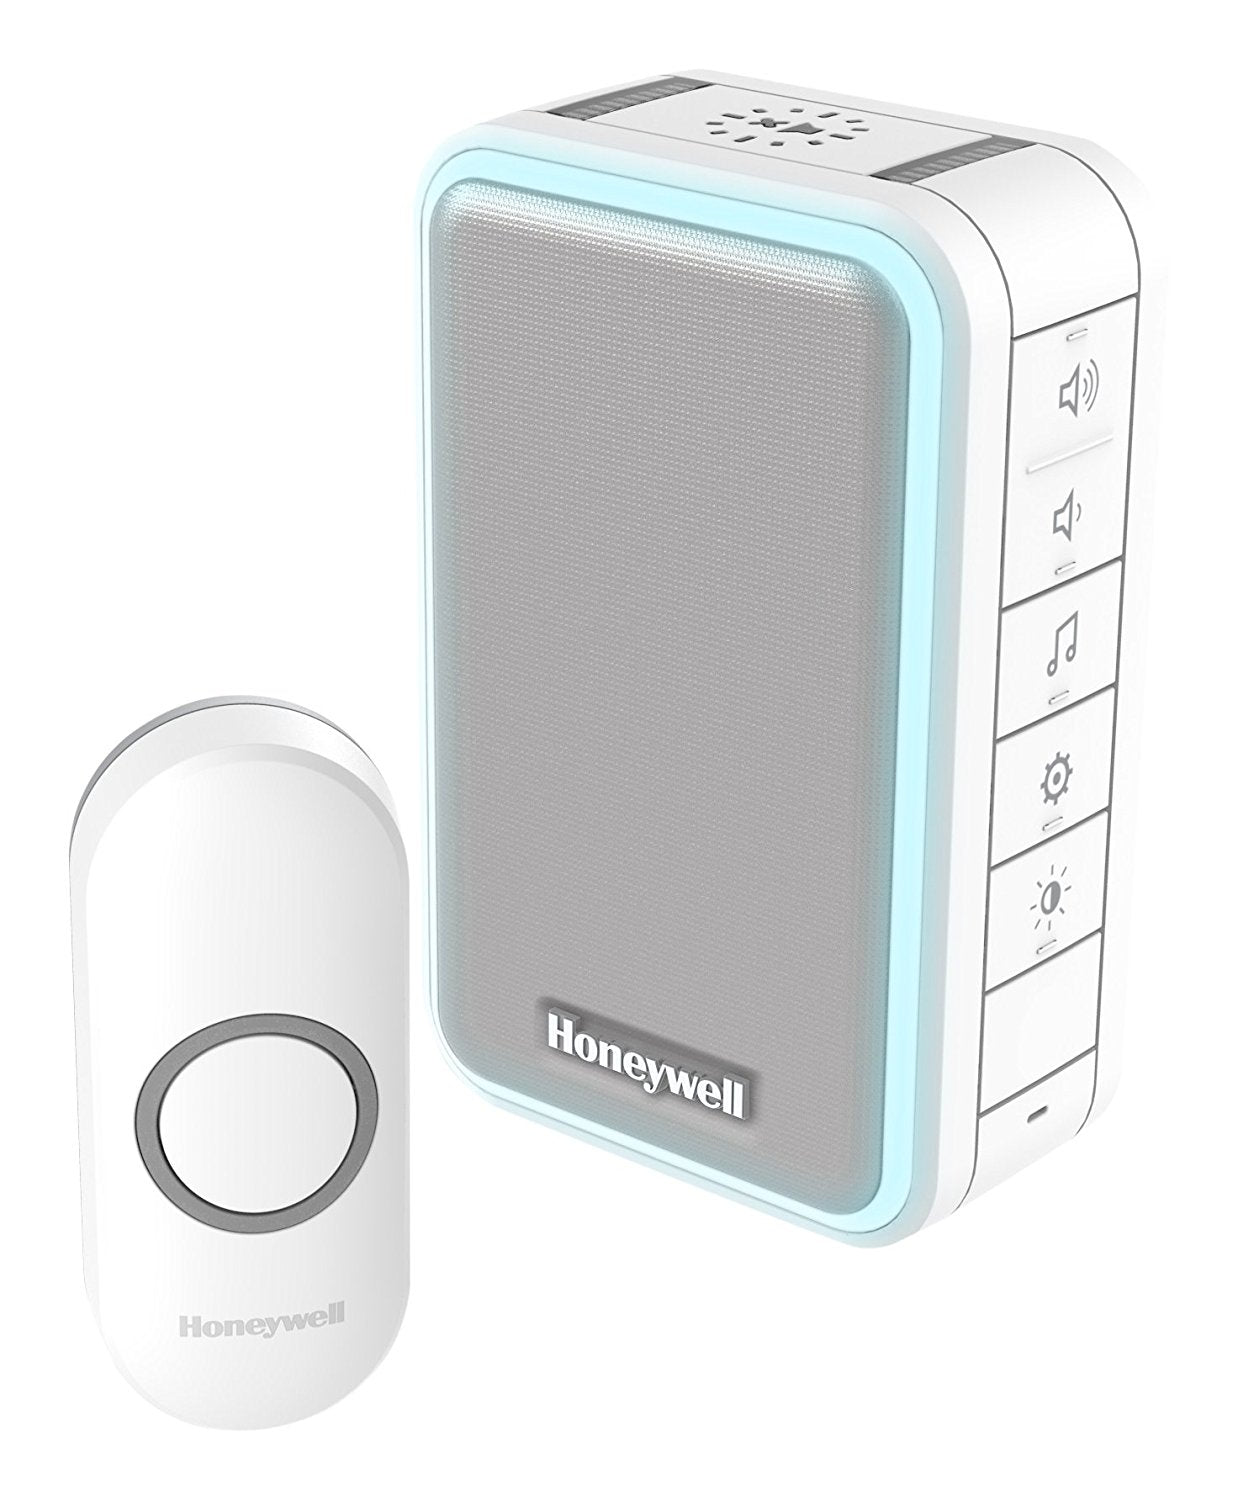 Honeywell DC315N 150 m 3 Series LED Doorbell - White